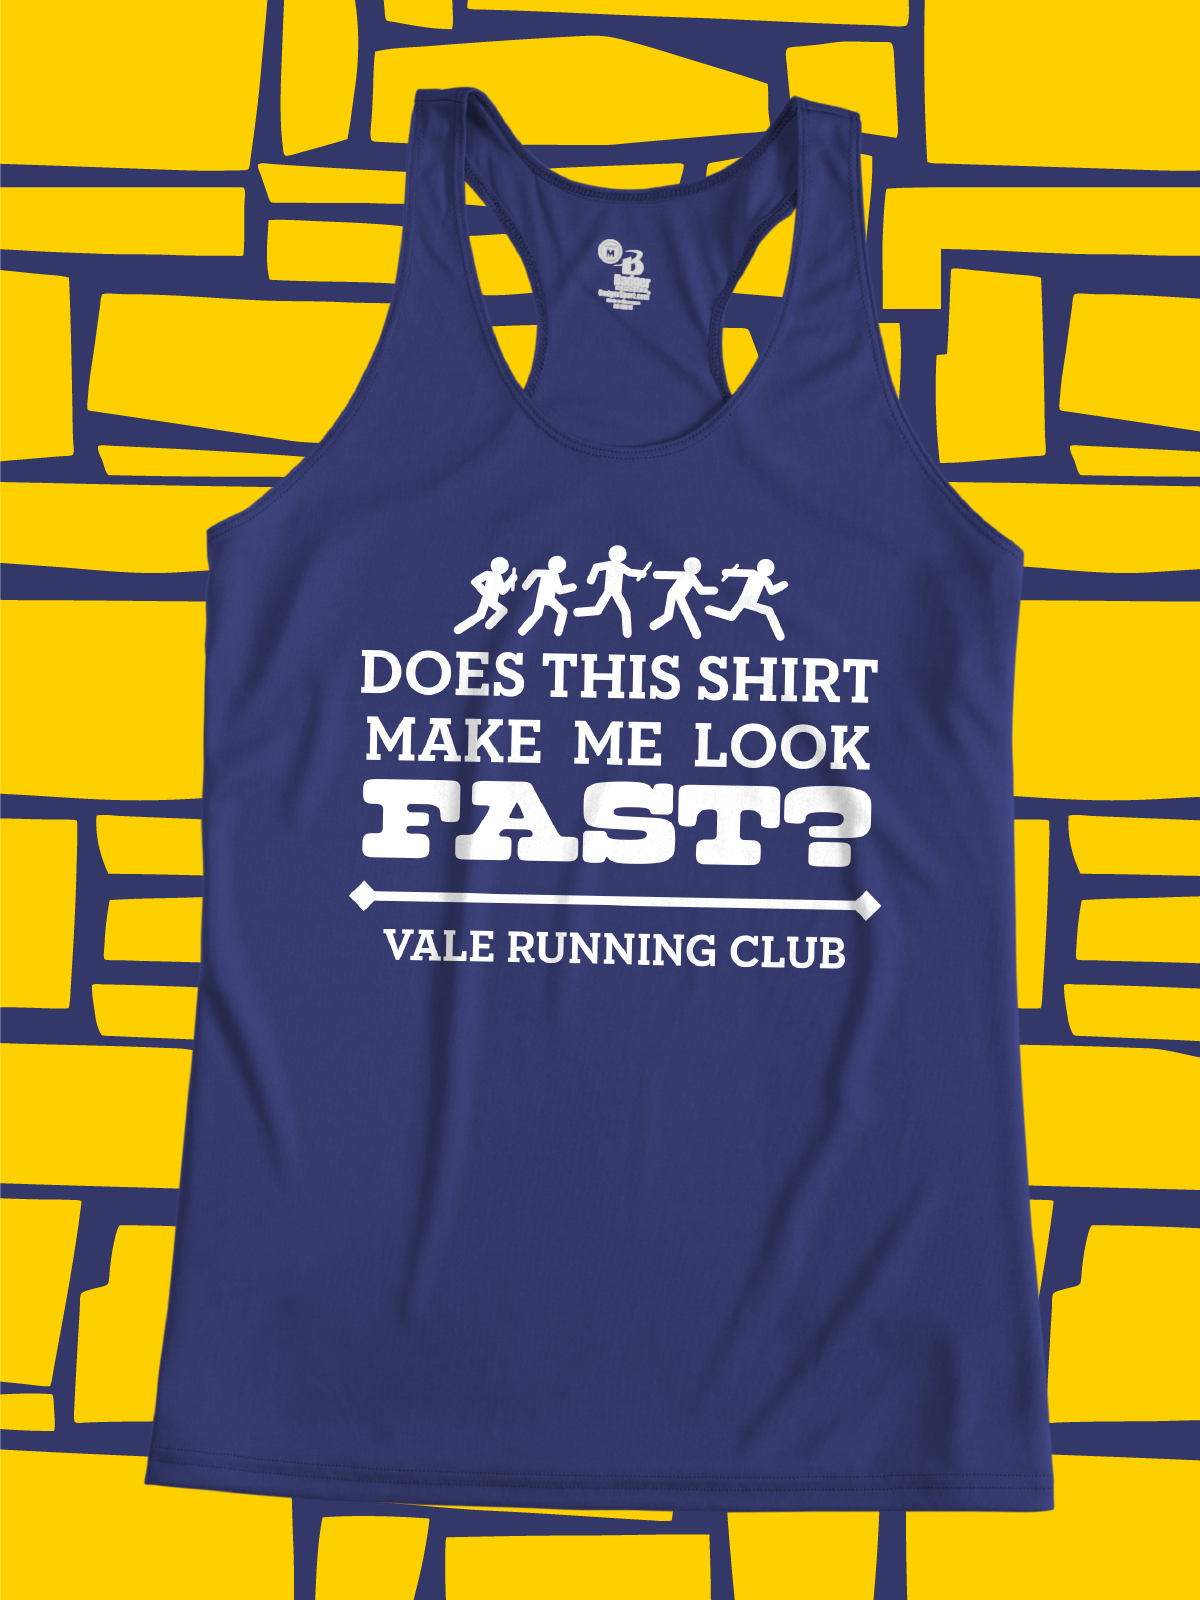 52cd5fb7 Does This Shirt Make Me Look Fast? is the perfect funny quote for your  running